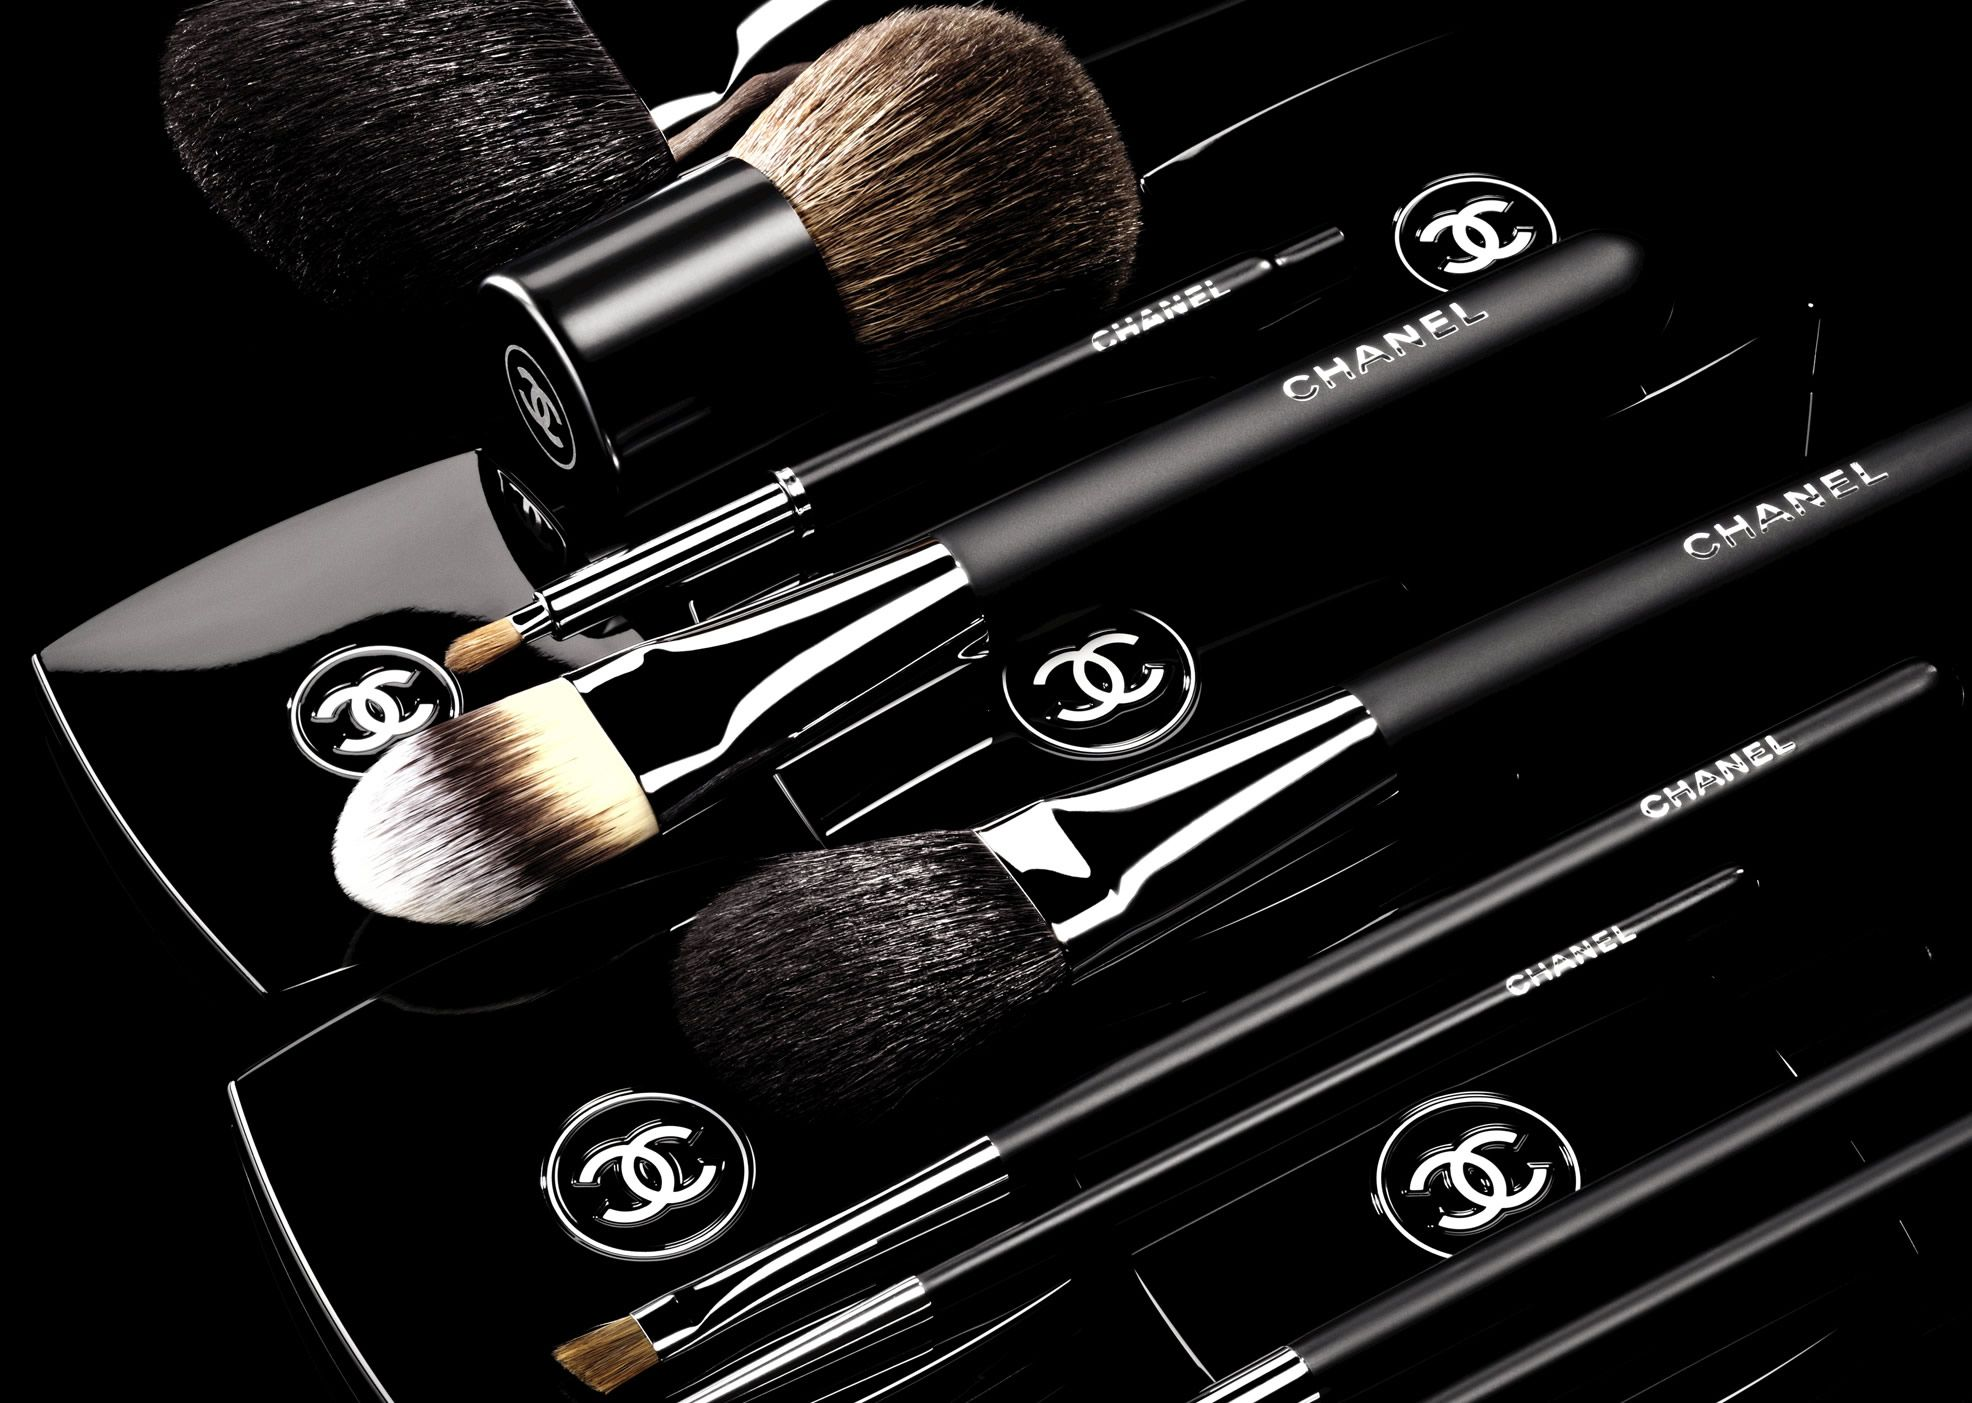 Amazing Brushes. Expensive but worth investing. Quality